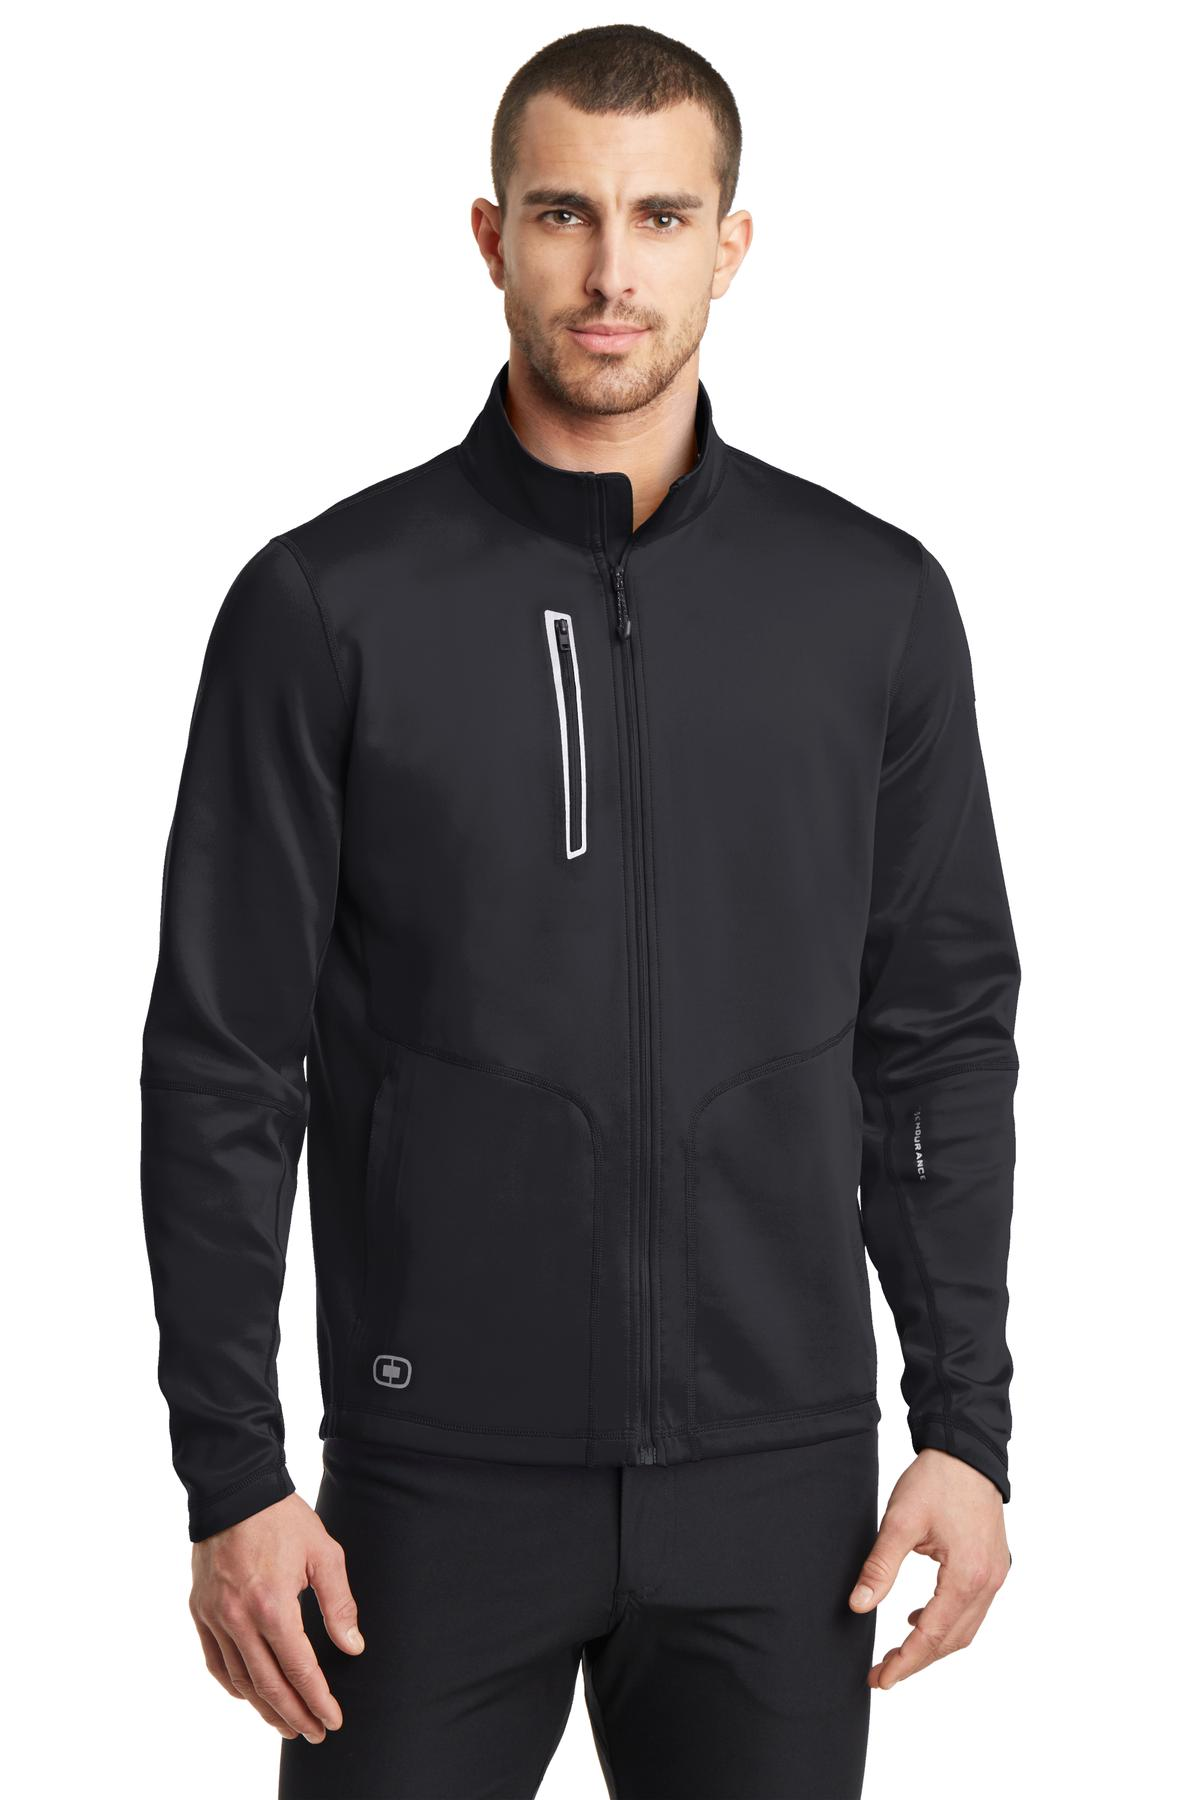 OGIO  OE700 - ENDURANCE Fulcrum Full-Zip